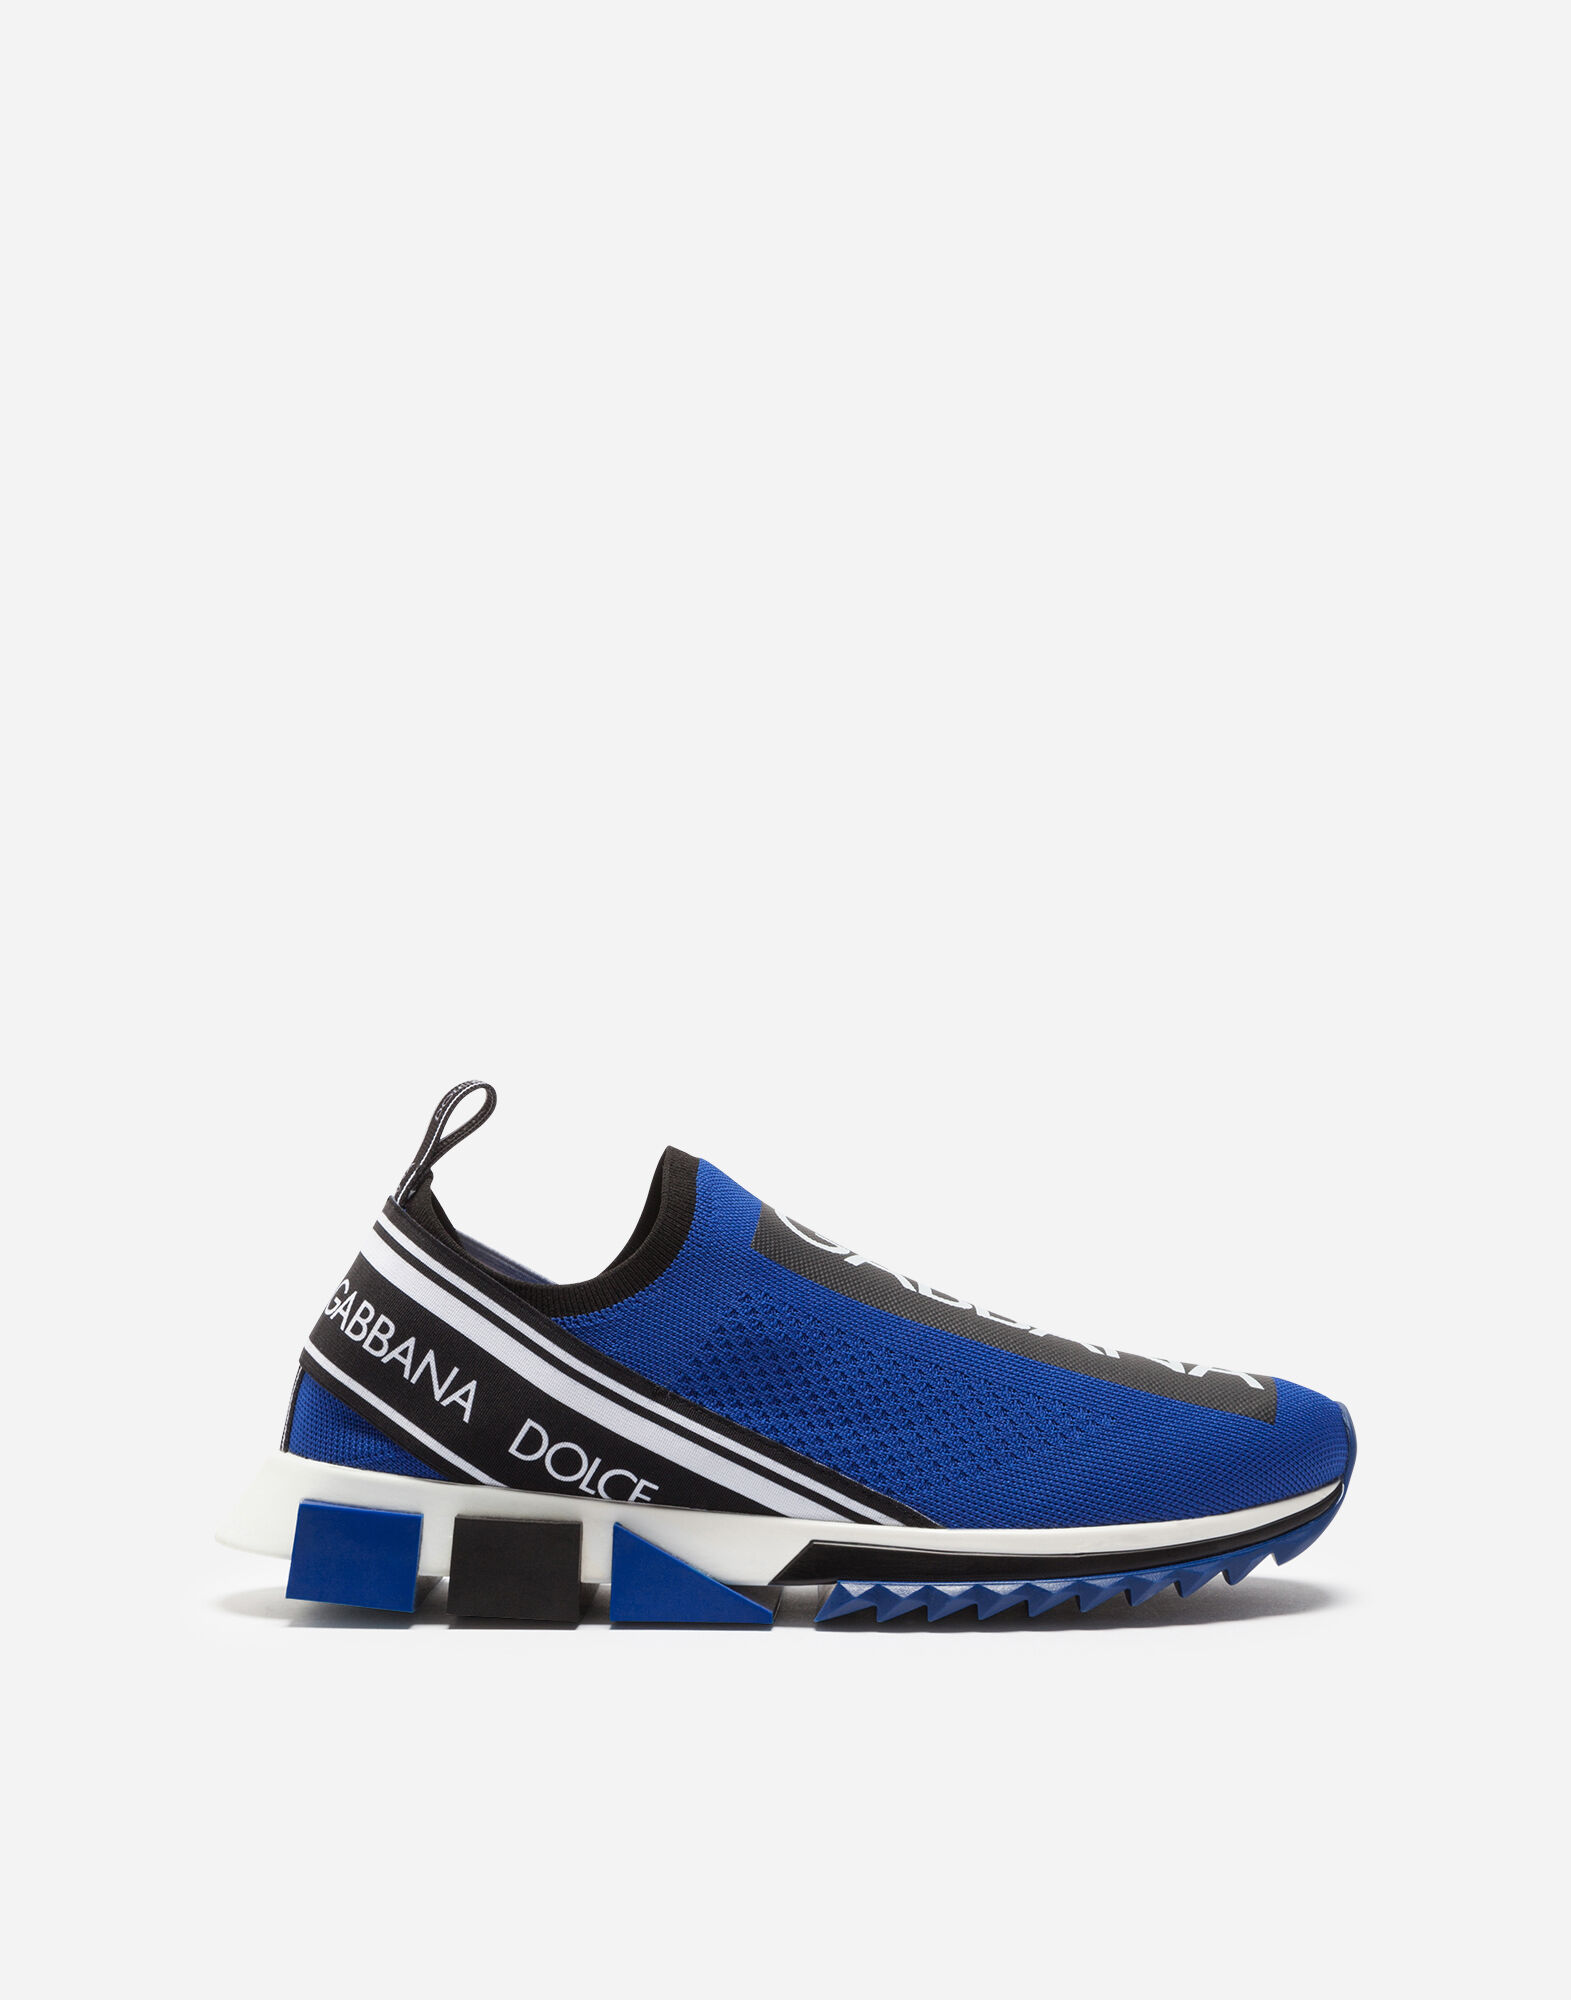 DIARY OF A CLOTHESHORSE: NEW SEASON SNEAKERS FROM